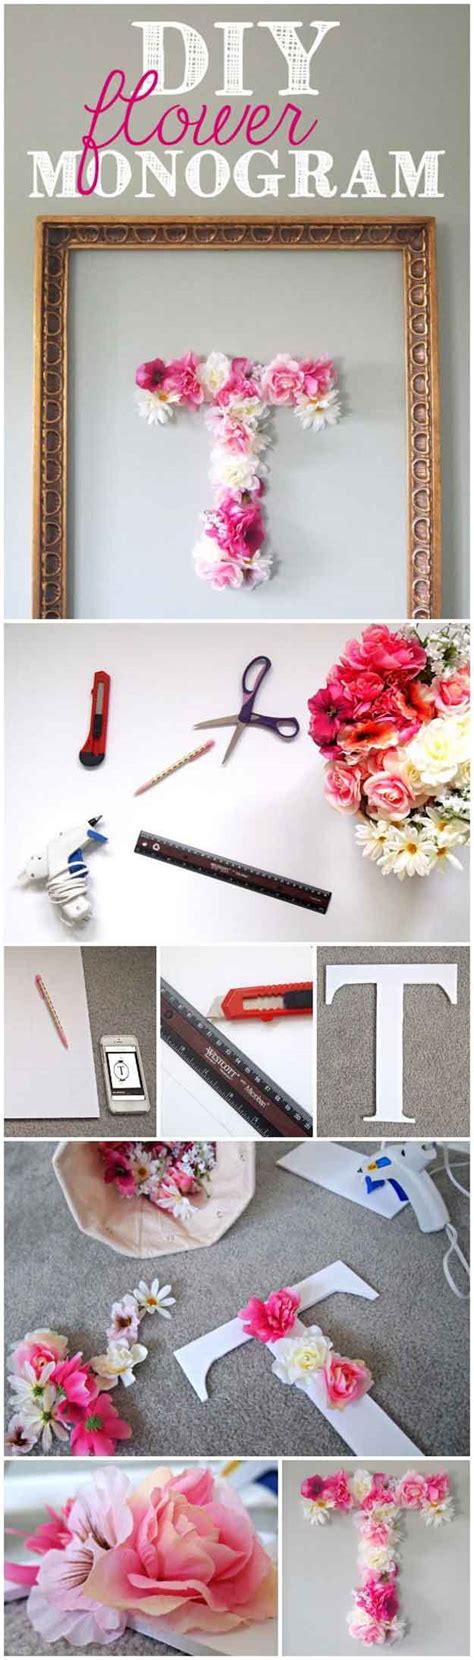 easy diy bedroom decor diy projects for bedroom diy ready